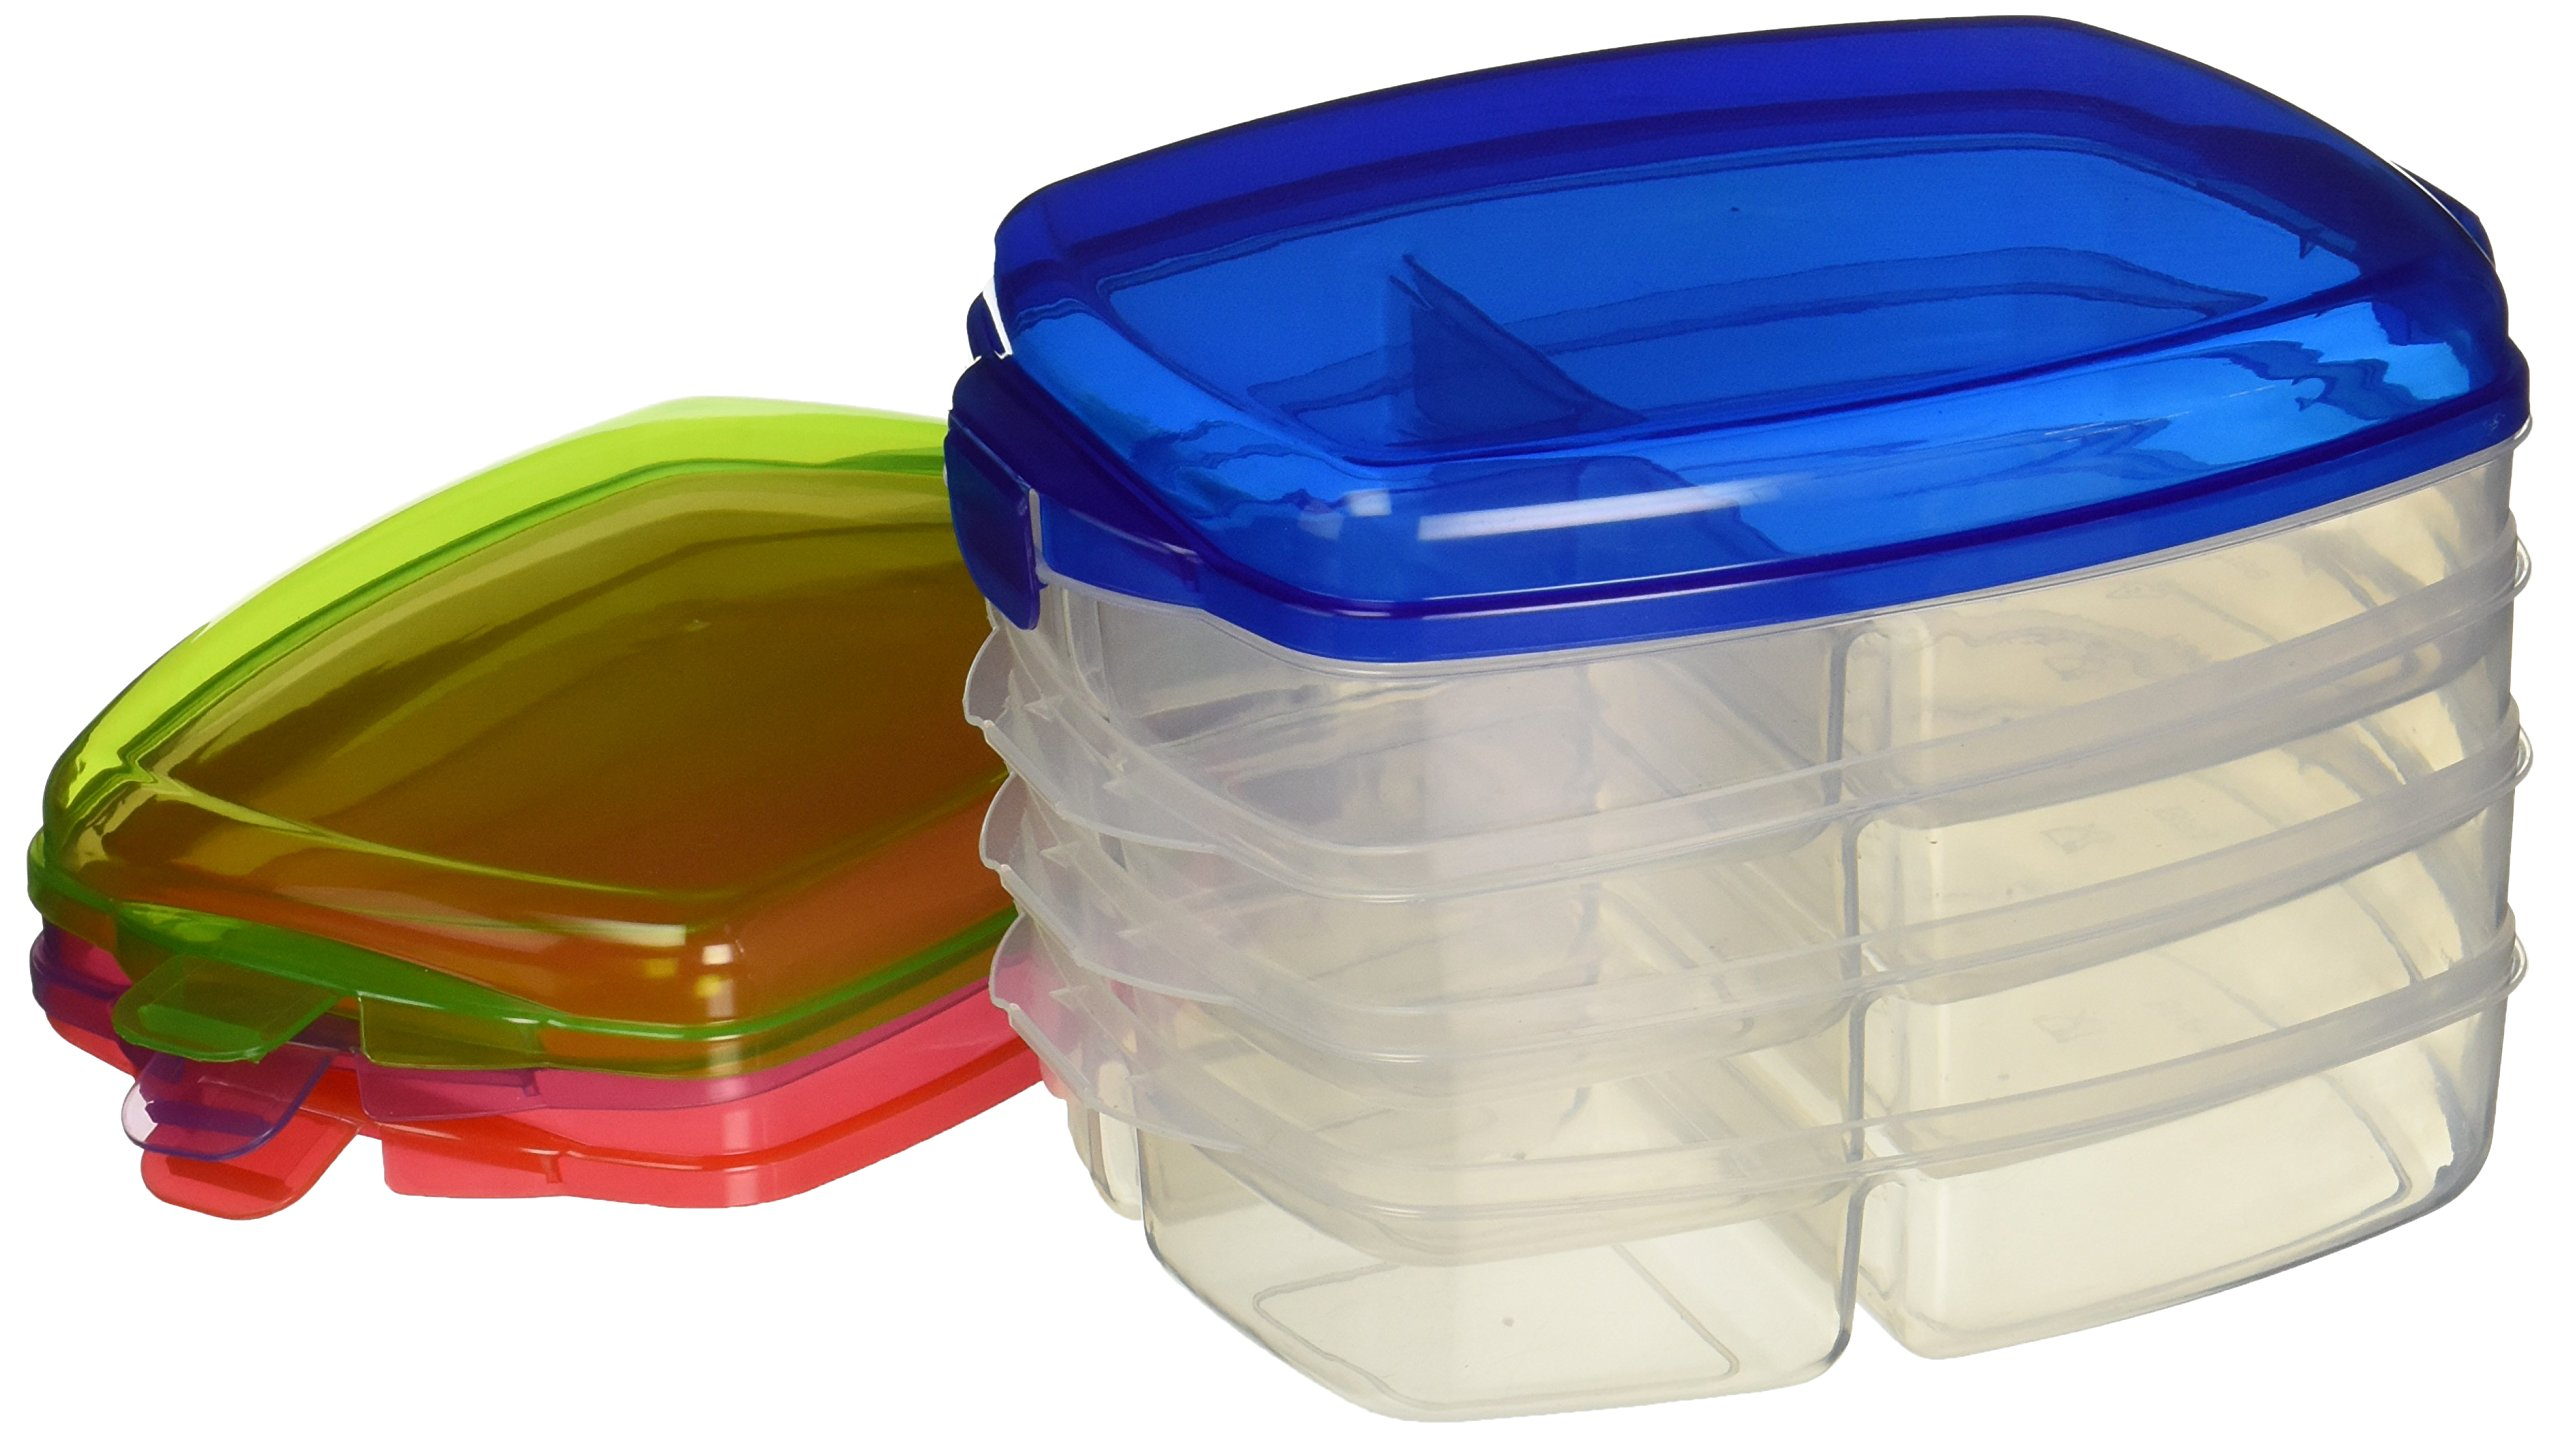 Lunch Box - Large Plastic Bento Boxes, Lunch Boxes Set of 4 - (NON Leakproof - lunchboxes)